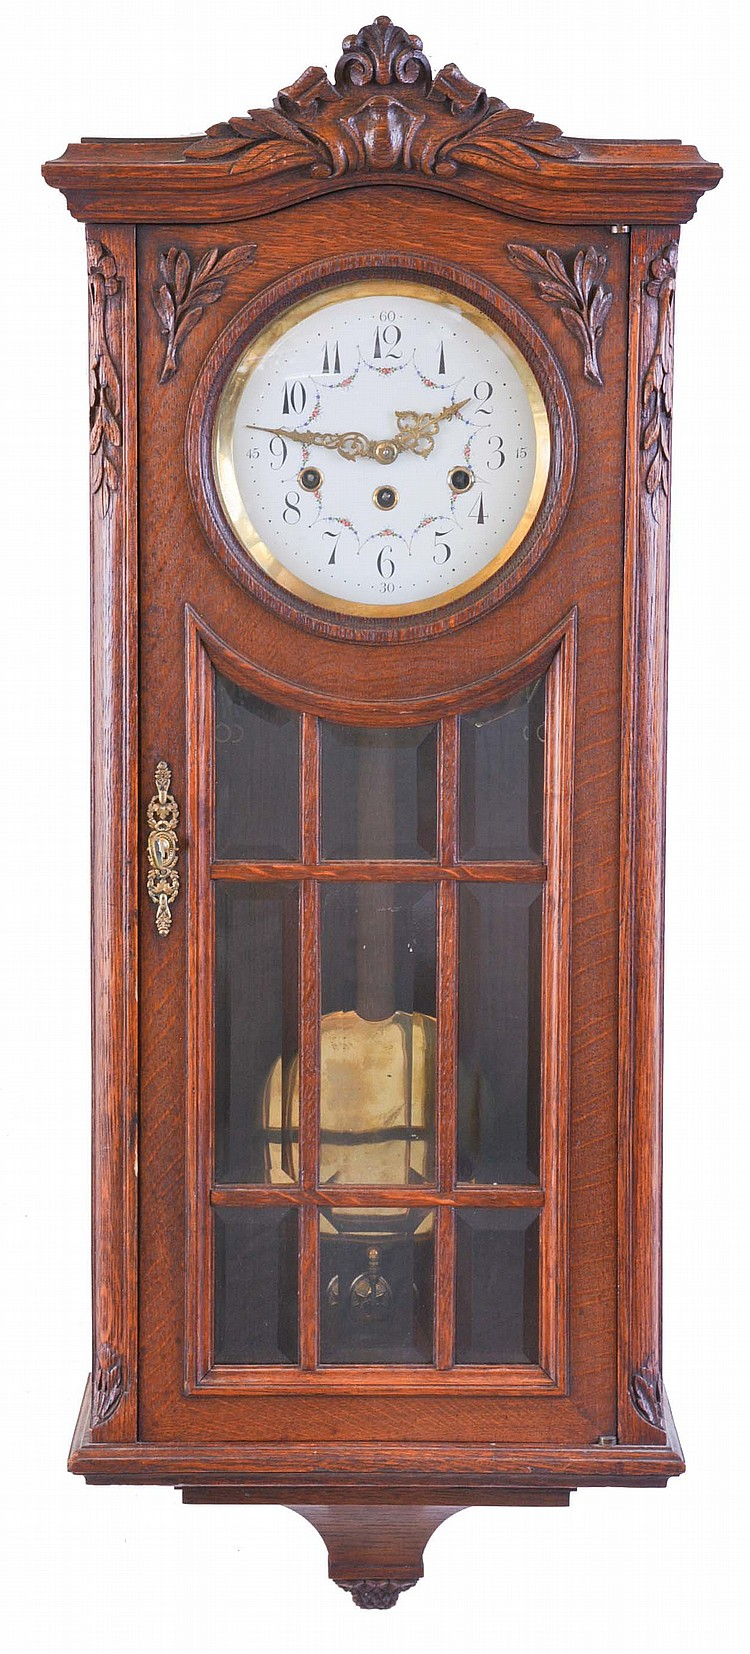 Junghans, Germany, a Westminster chiming wall clock, rectilinear oak case with carved ornament, door with 9 beveled glasses, Arabic numeral enamel dial with floral garlands and Louis XV style hands, 8 day, three train movement, with brass pendulum